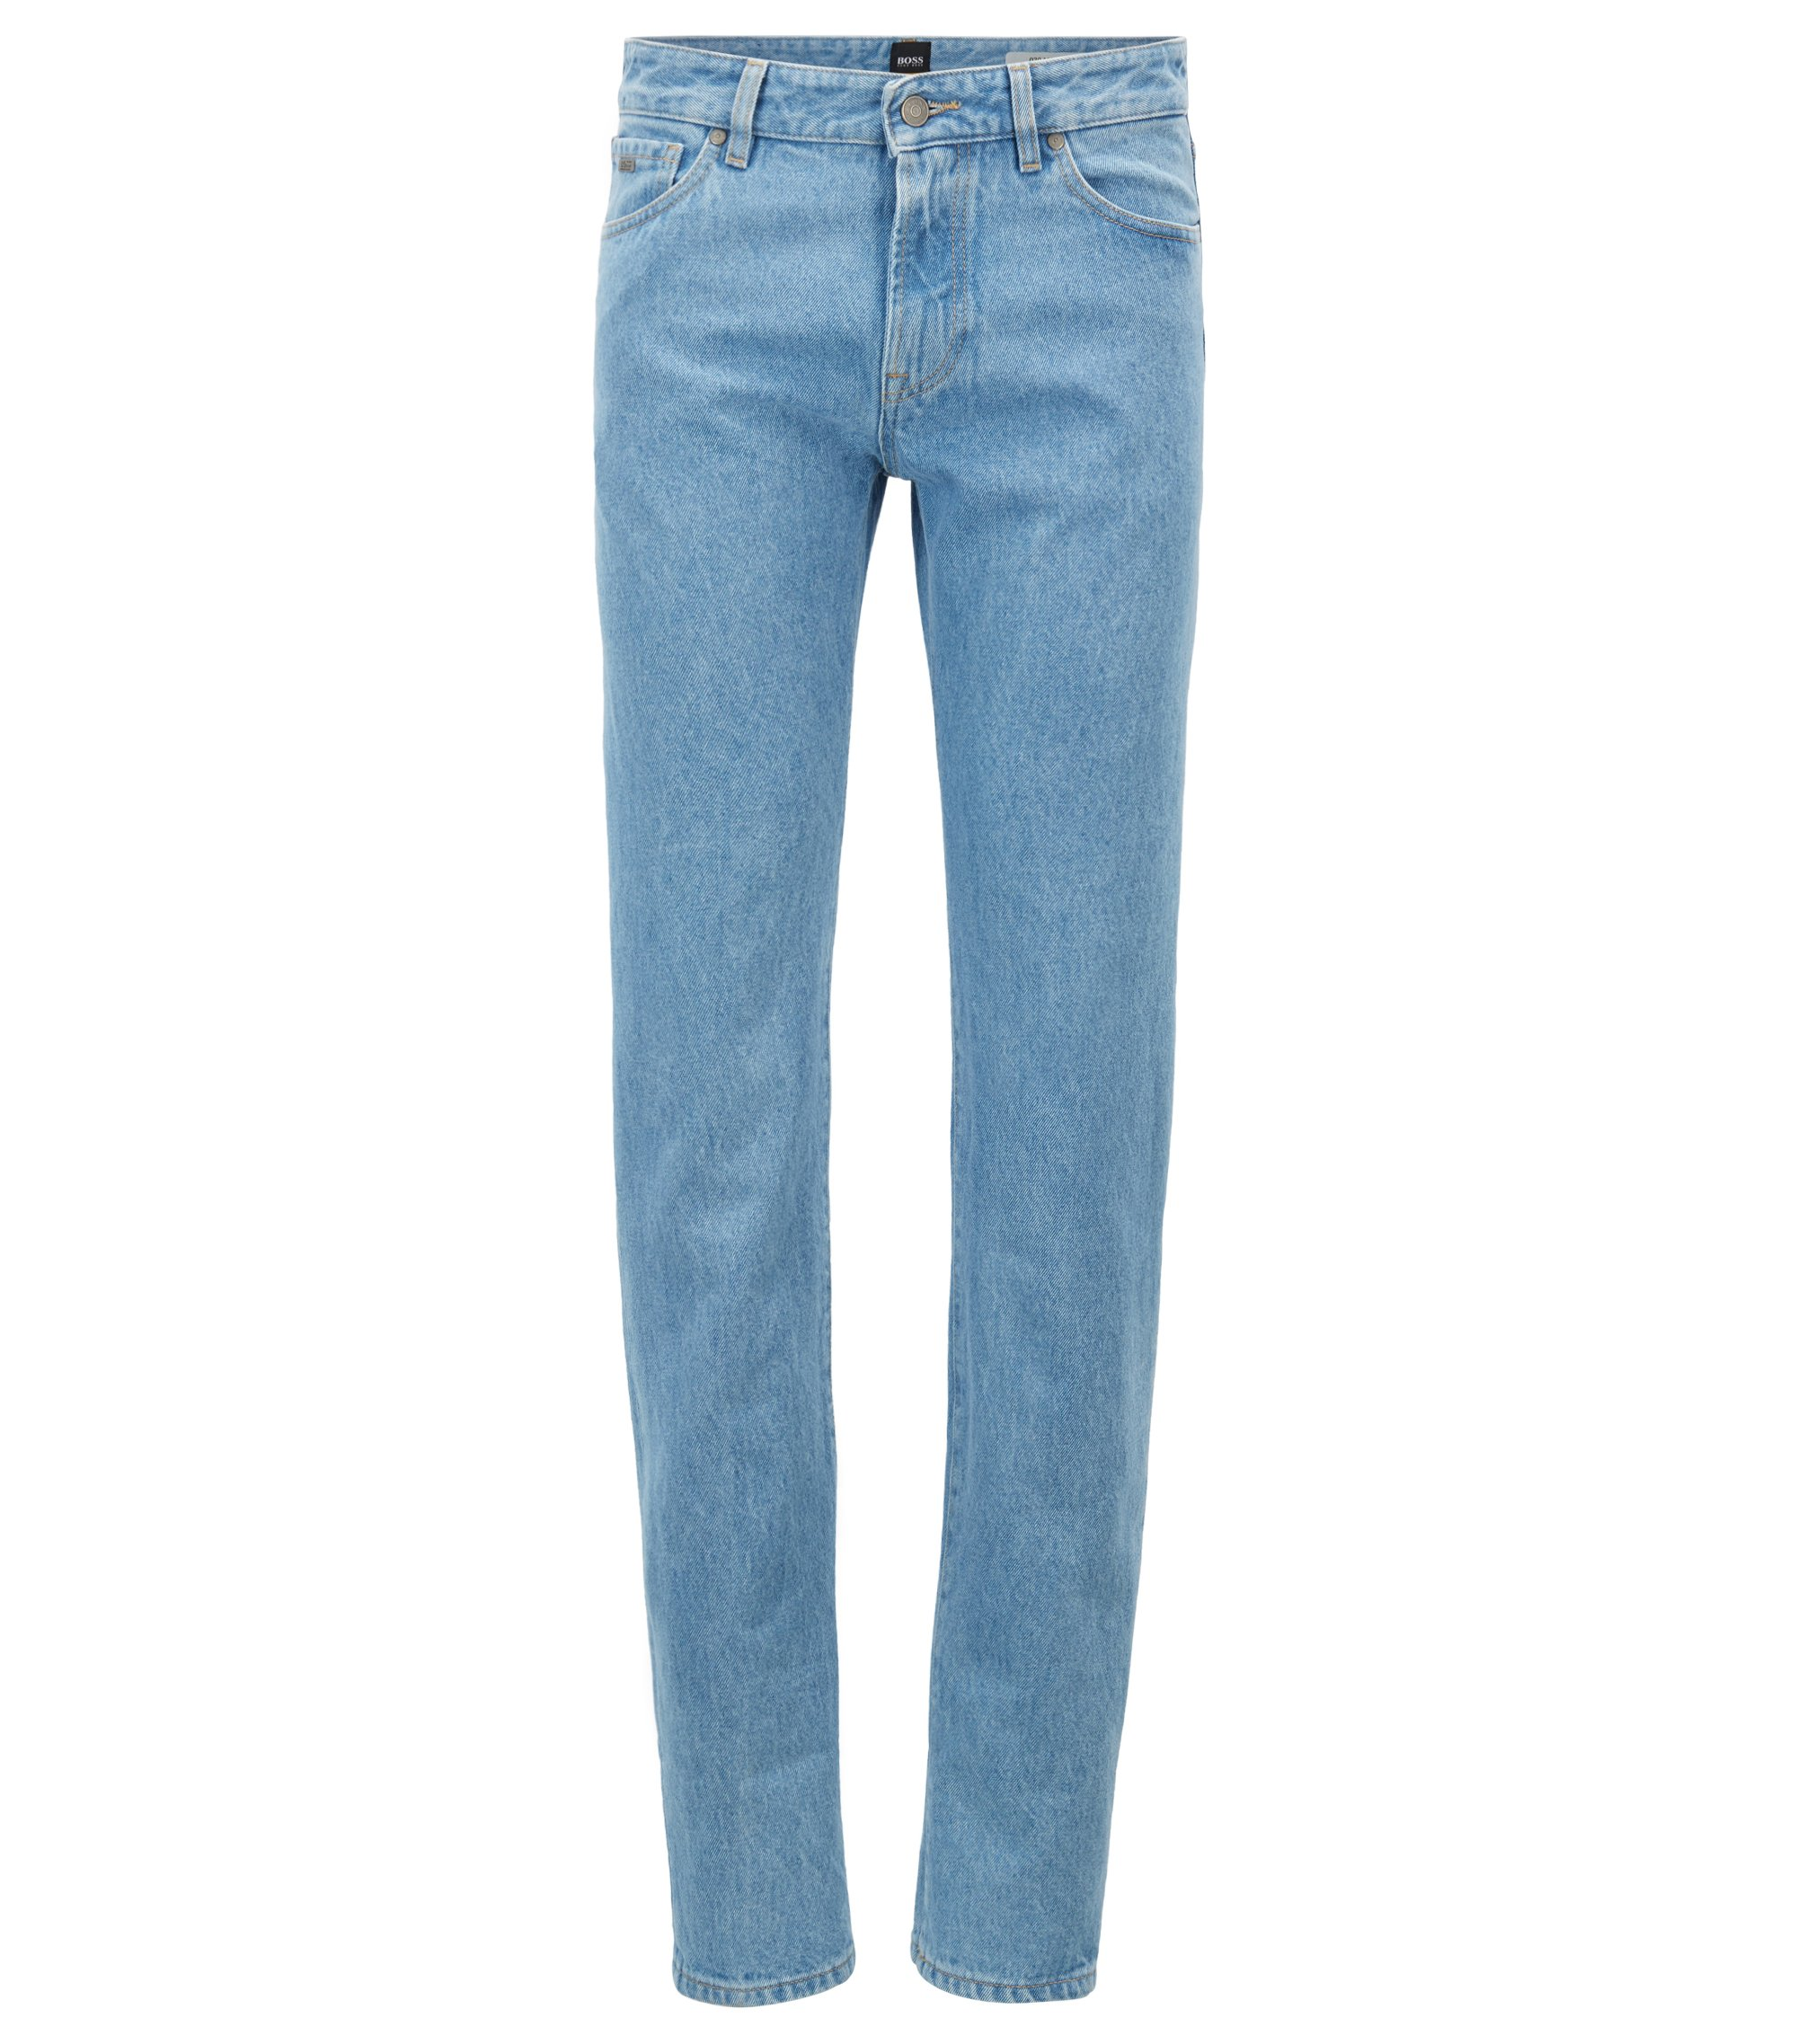 Jean Regular Fit en denim rigide, avec revers, Bleu vif